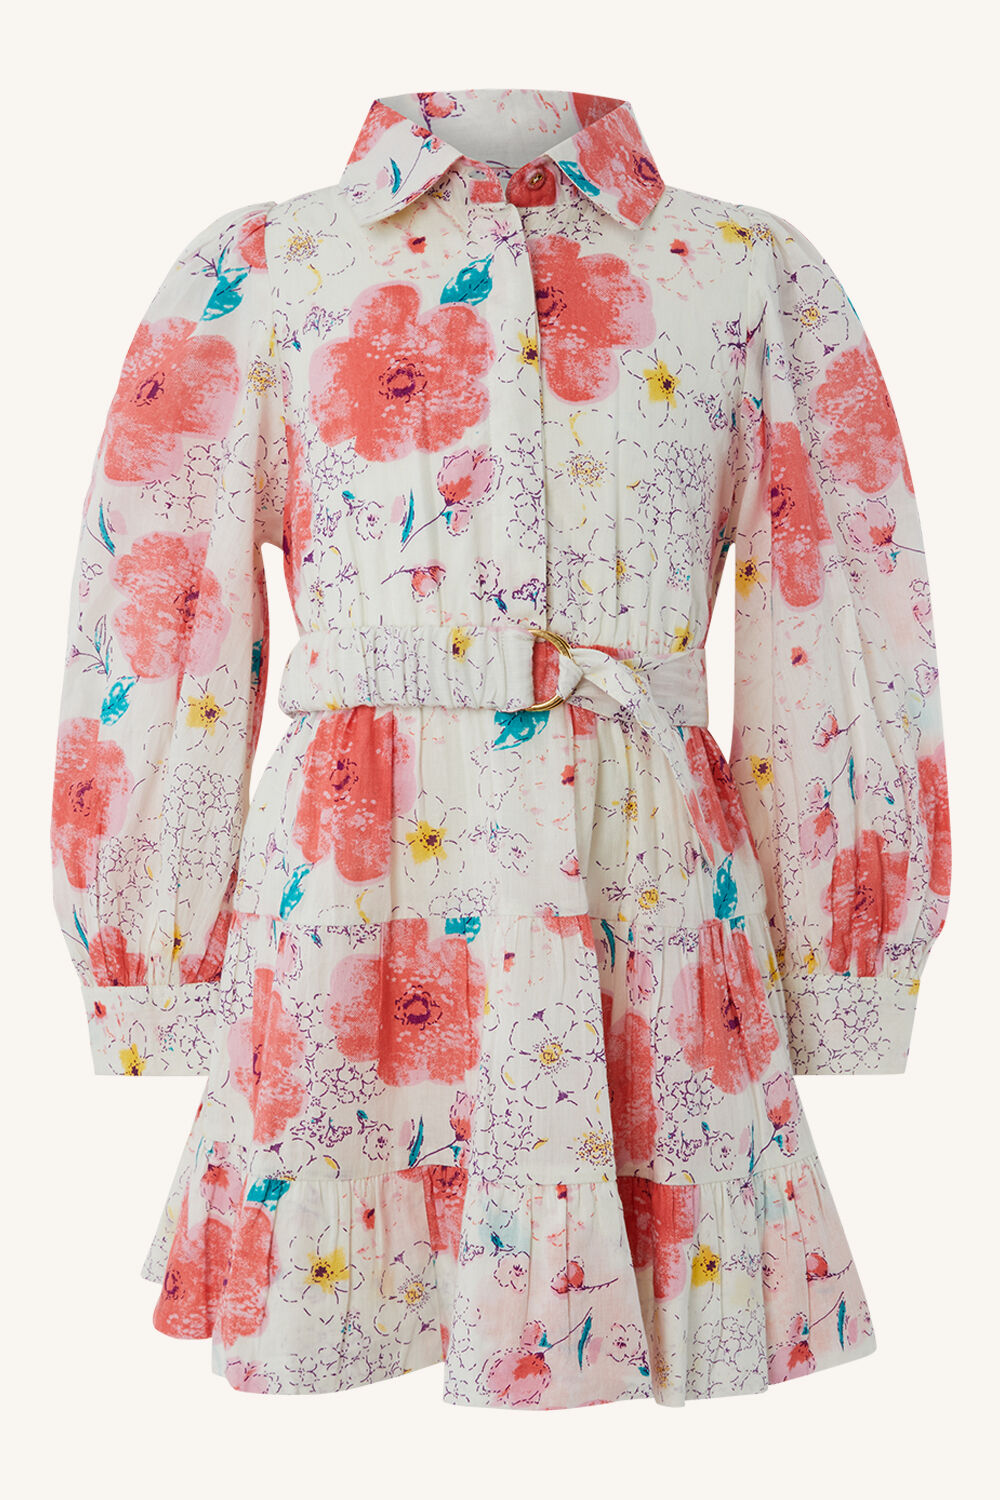 PRINTED MINI SHIRT DRESS in colour PURPLE ORCHID